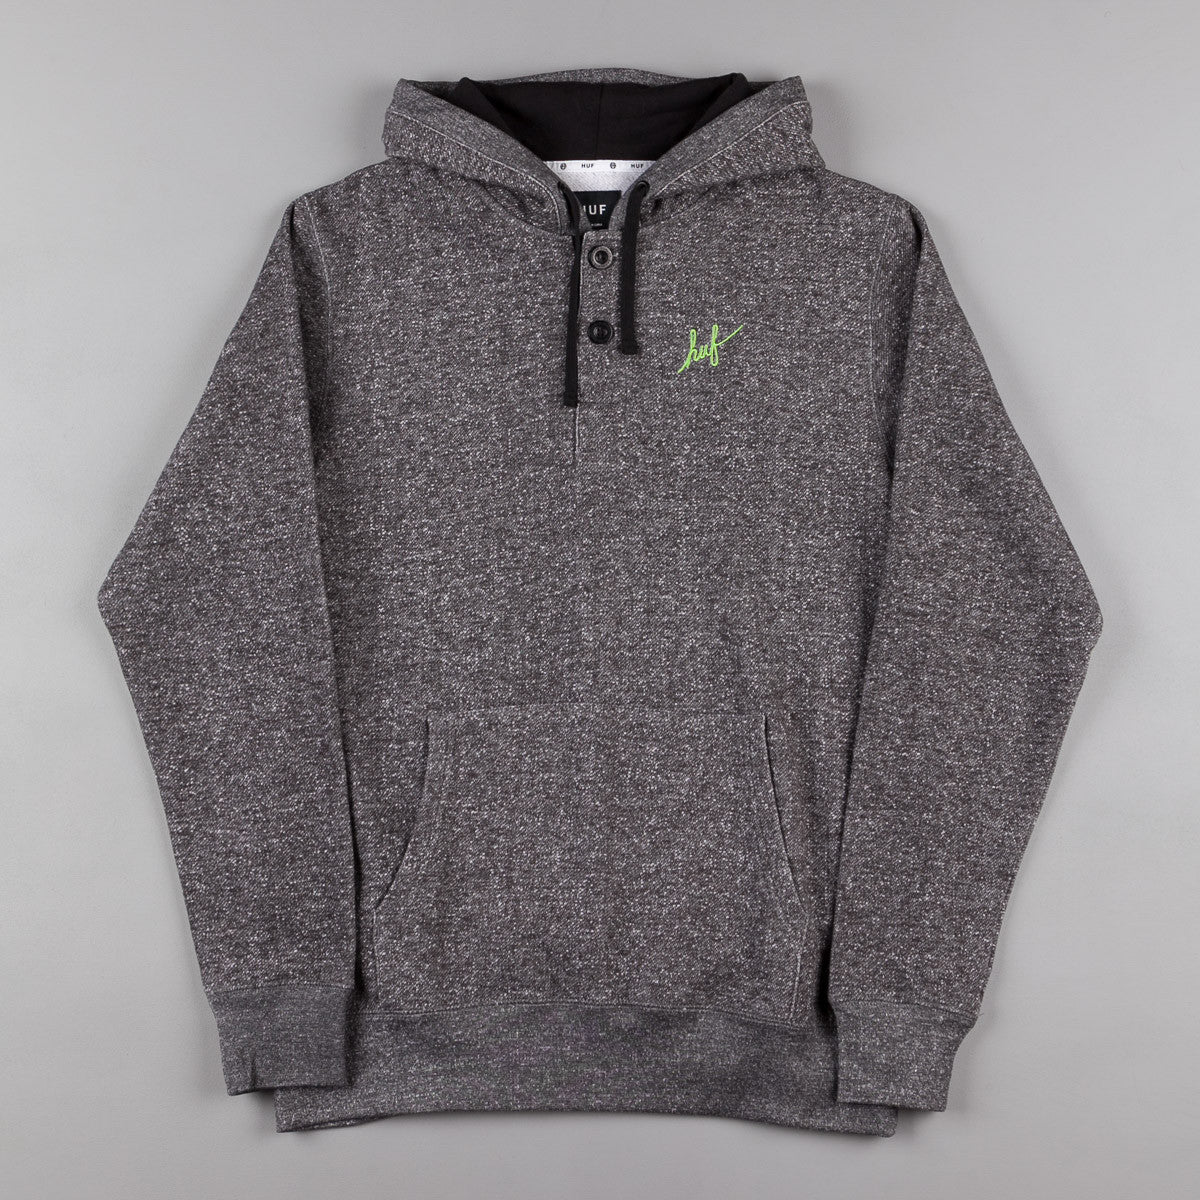 HUF Granite Henley Pullover Hooded Sweatshirt - Granite Heather